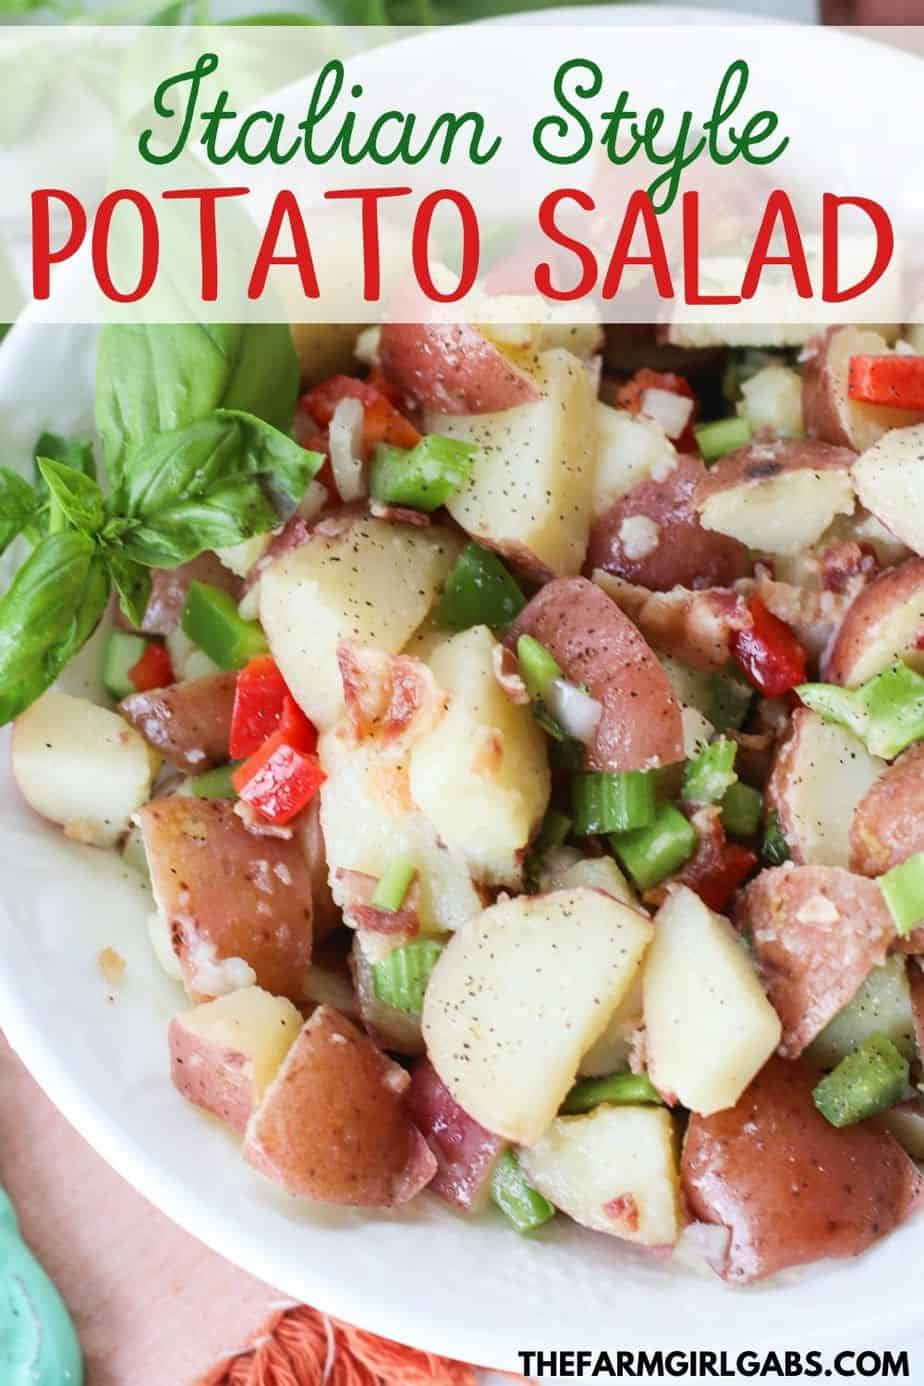 This flavorful Italian Potato salad is always a staple at any summer gathering I host. It's perfect for summer parties, potlucks or just as a simple side dish.....and it has bacon in it! Enough said!